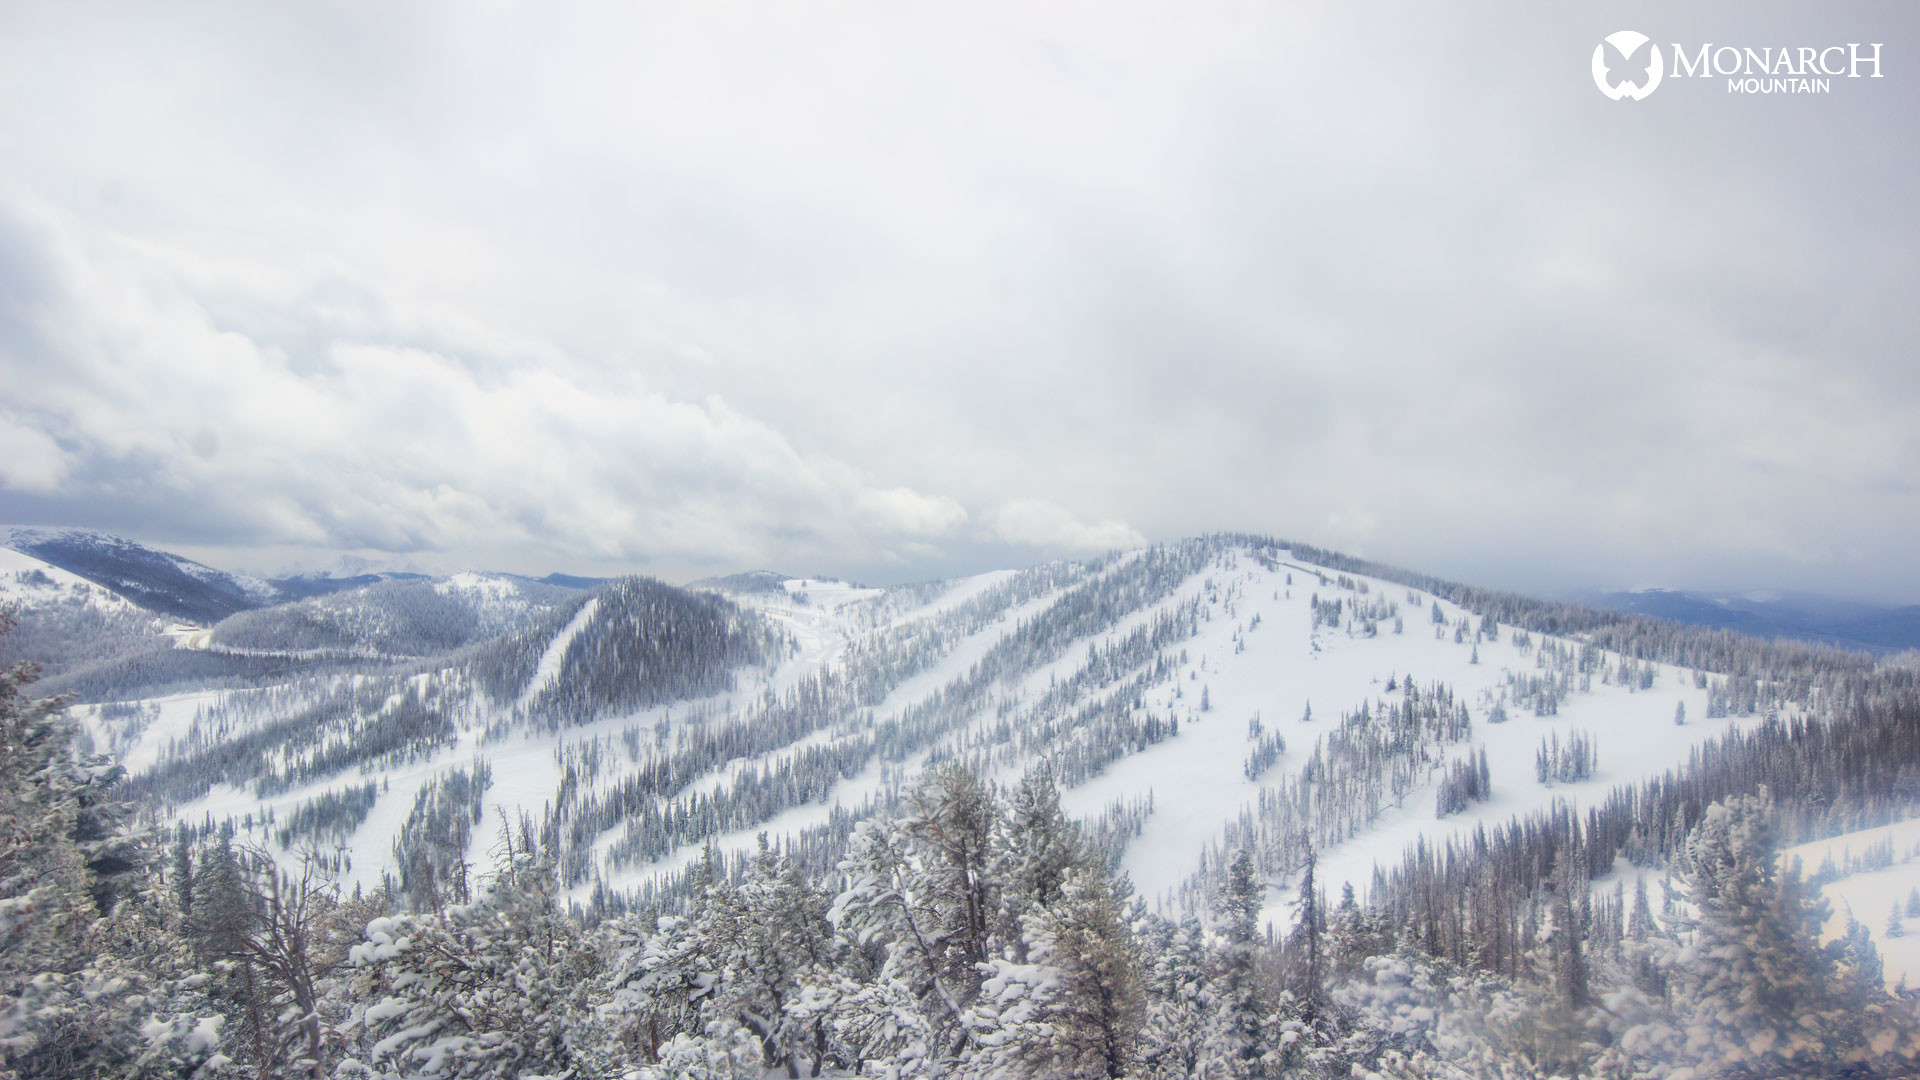 Monarch Mountain around noon Tuesday. / Photo courtesy Monarch Mountain